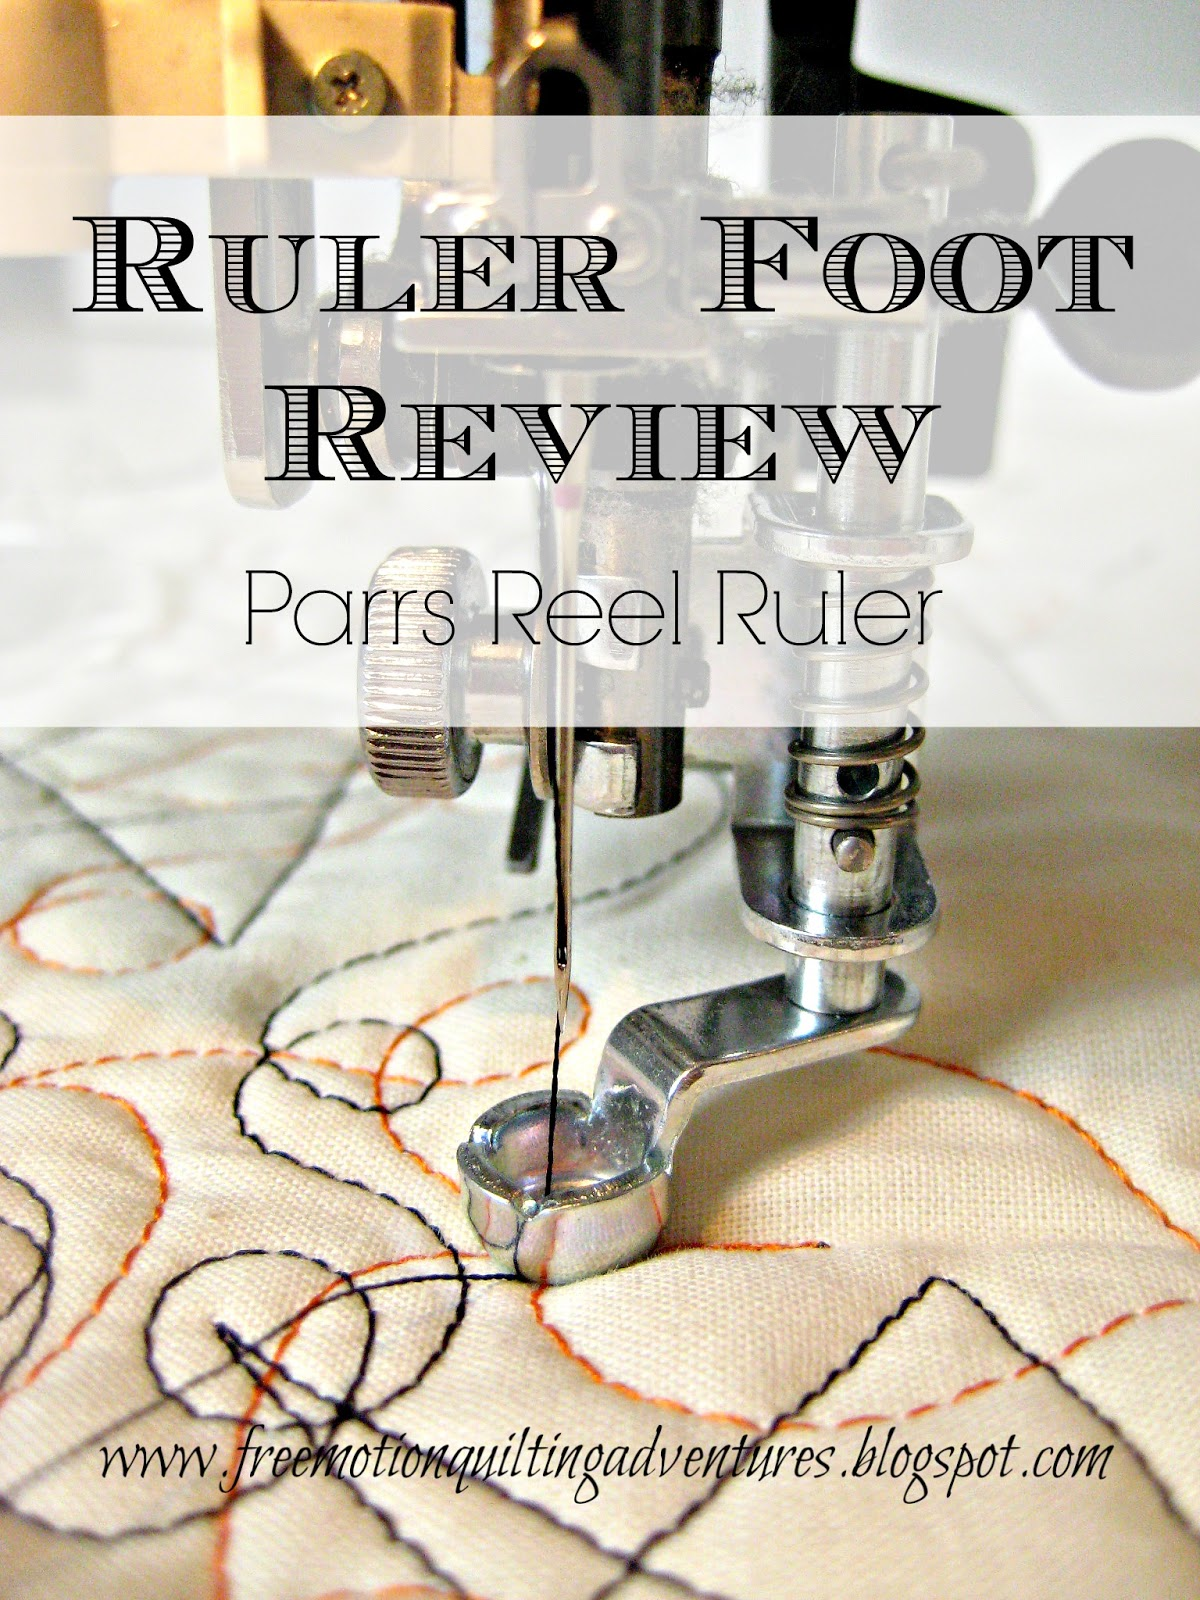 Amy S Free Motion Quilting Adventures A Ruler Foot